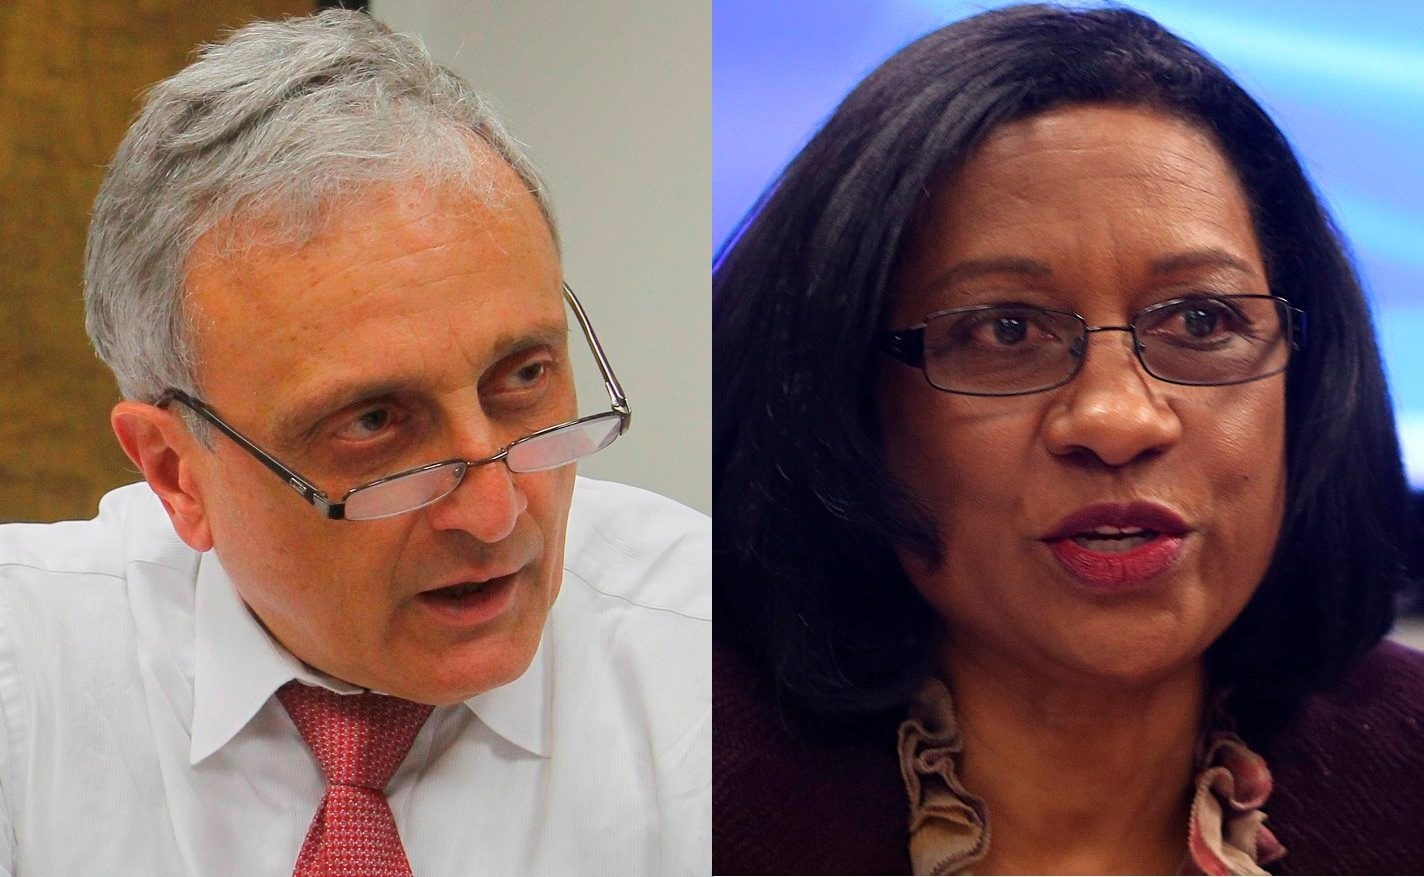 Buffalo School Board Member Carl Paladino vows to continue his effort to oust Superintendent Pamela Brown.